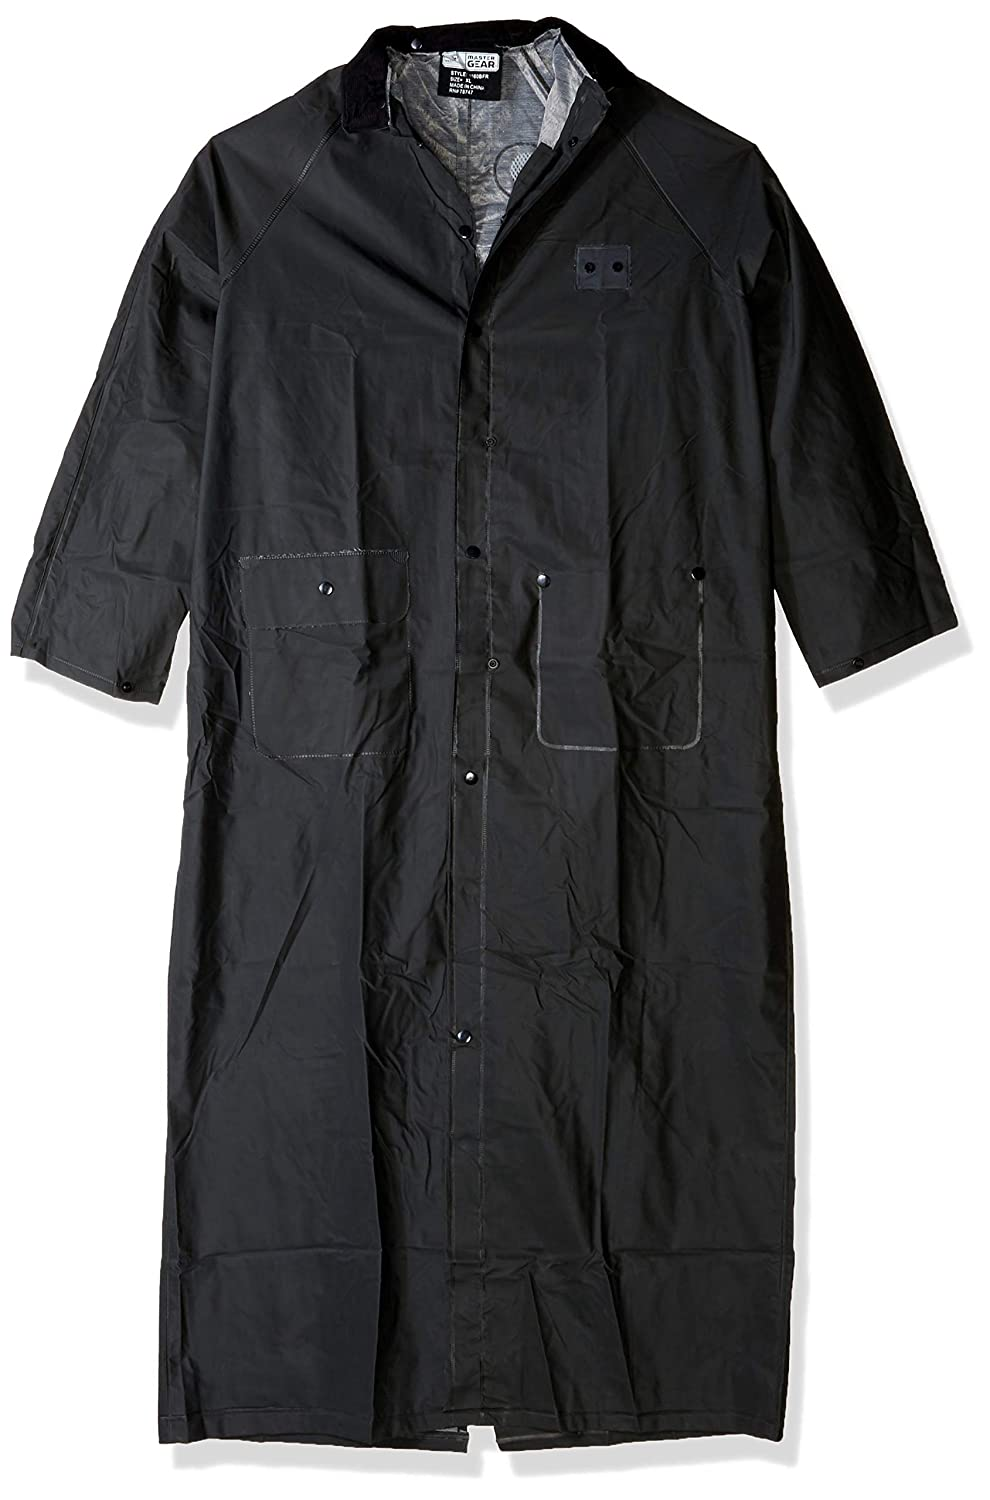 Black Each PVC Over Polyester 60 Rider Coat West Chester 4160BFR//L Limited Flammability Detachable Hood